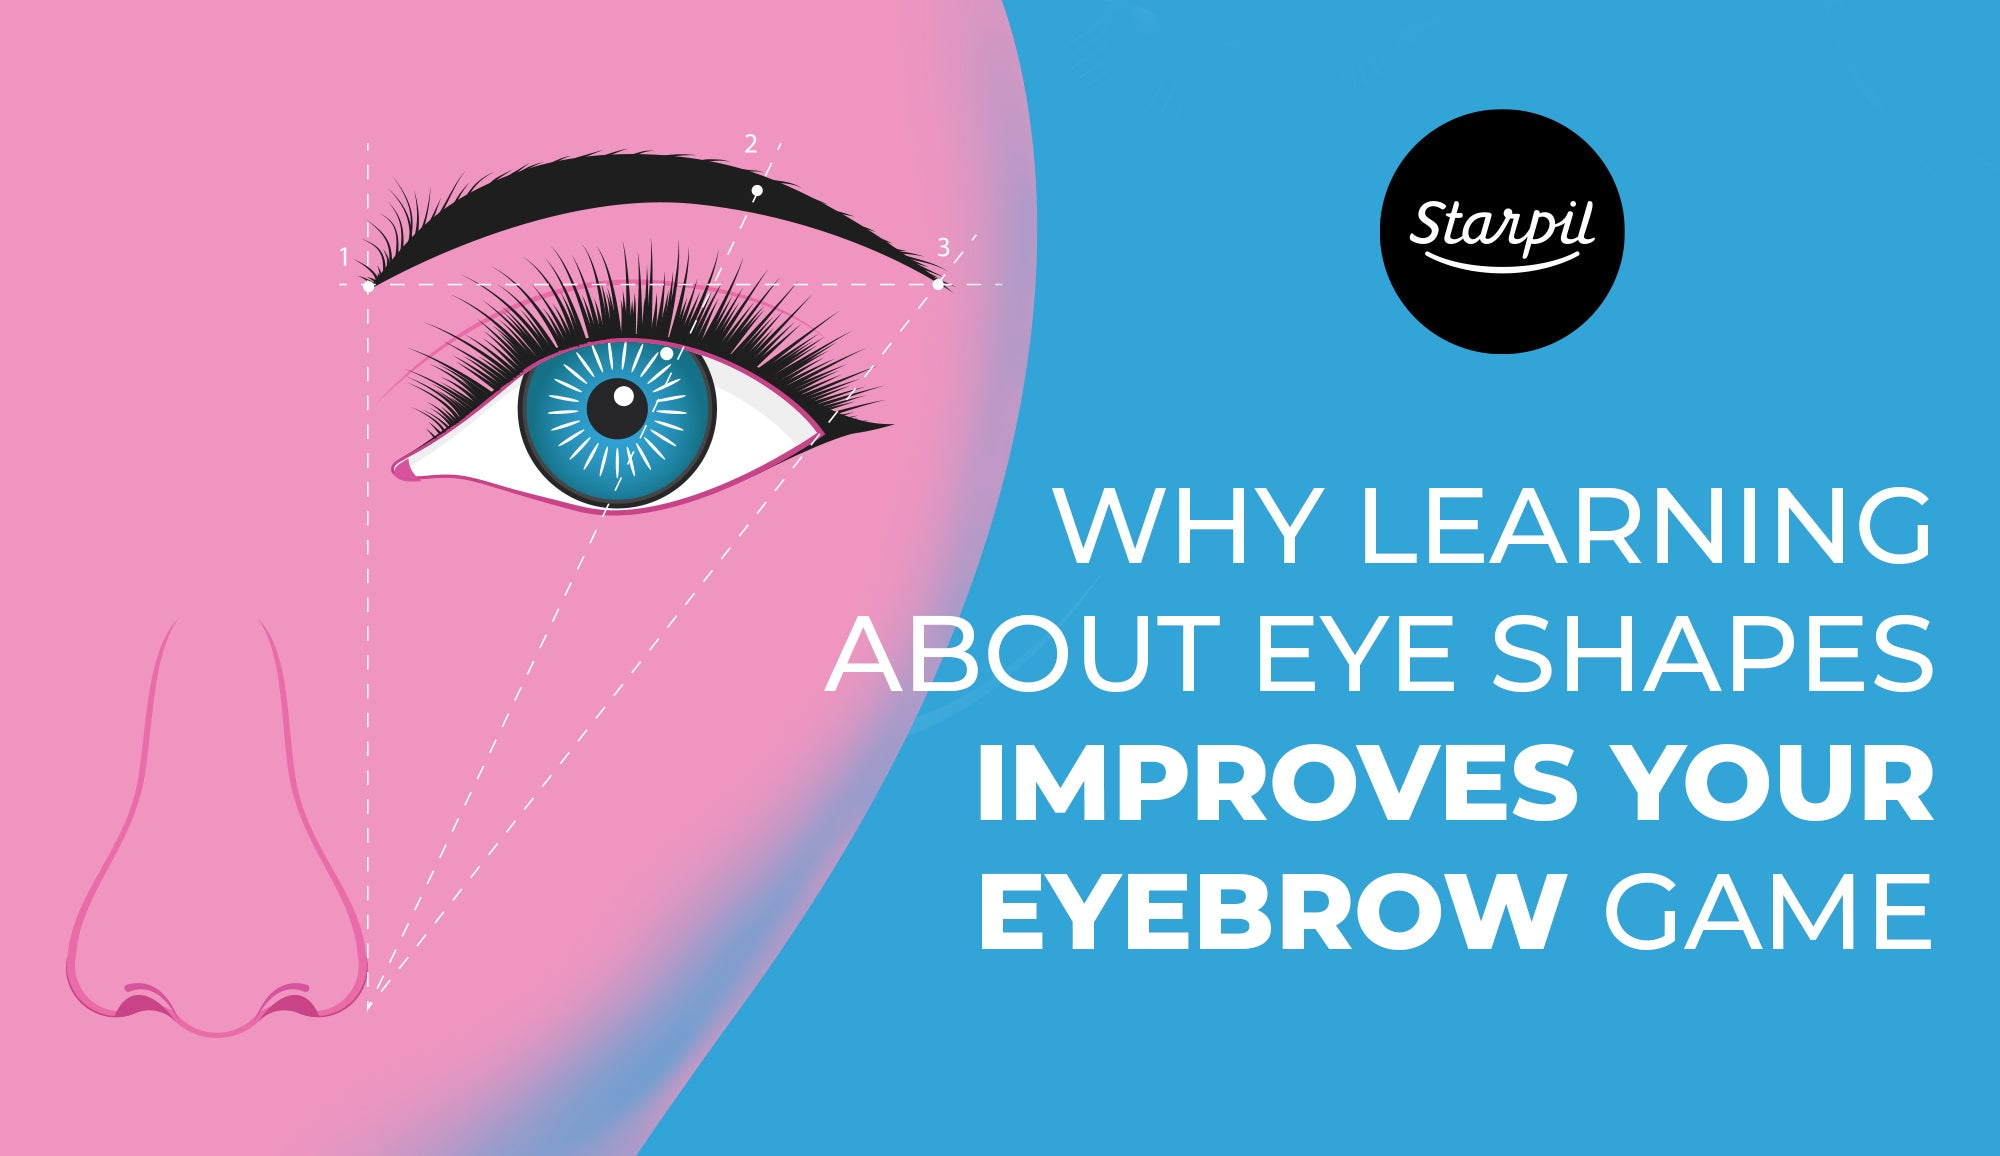 Learning about eye shapes improves your eyebrow game